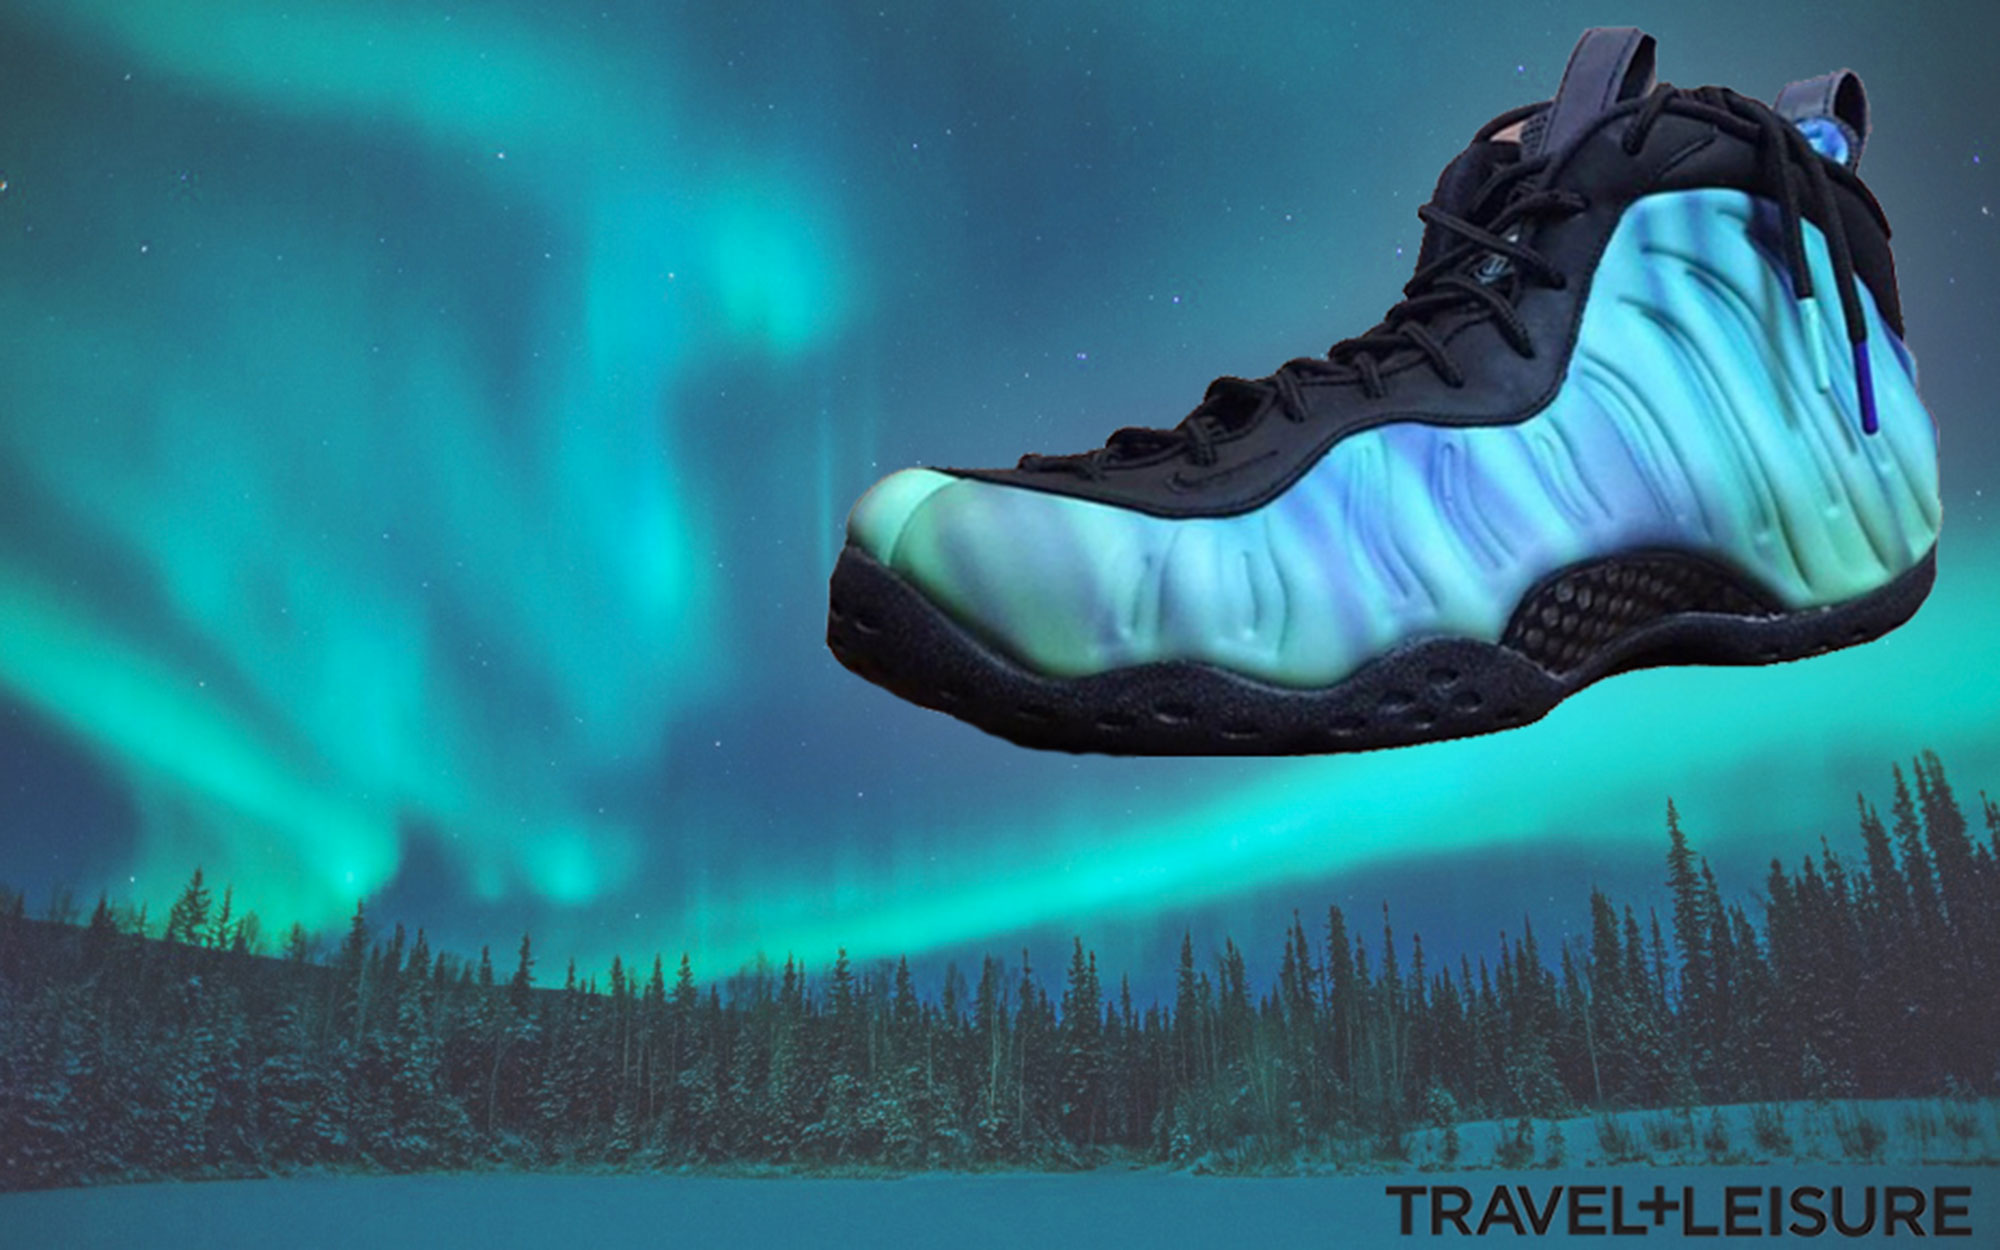 Nike's New Shoes Are Supposed to Look Like the Northern Lights